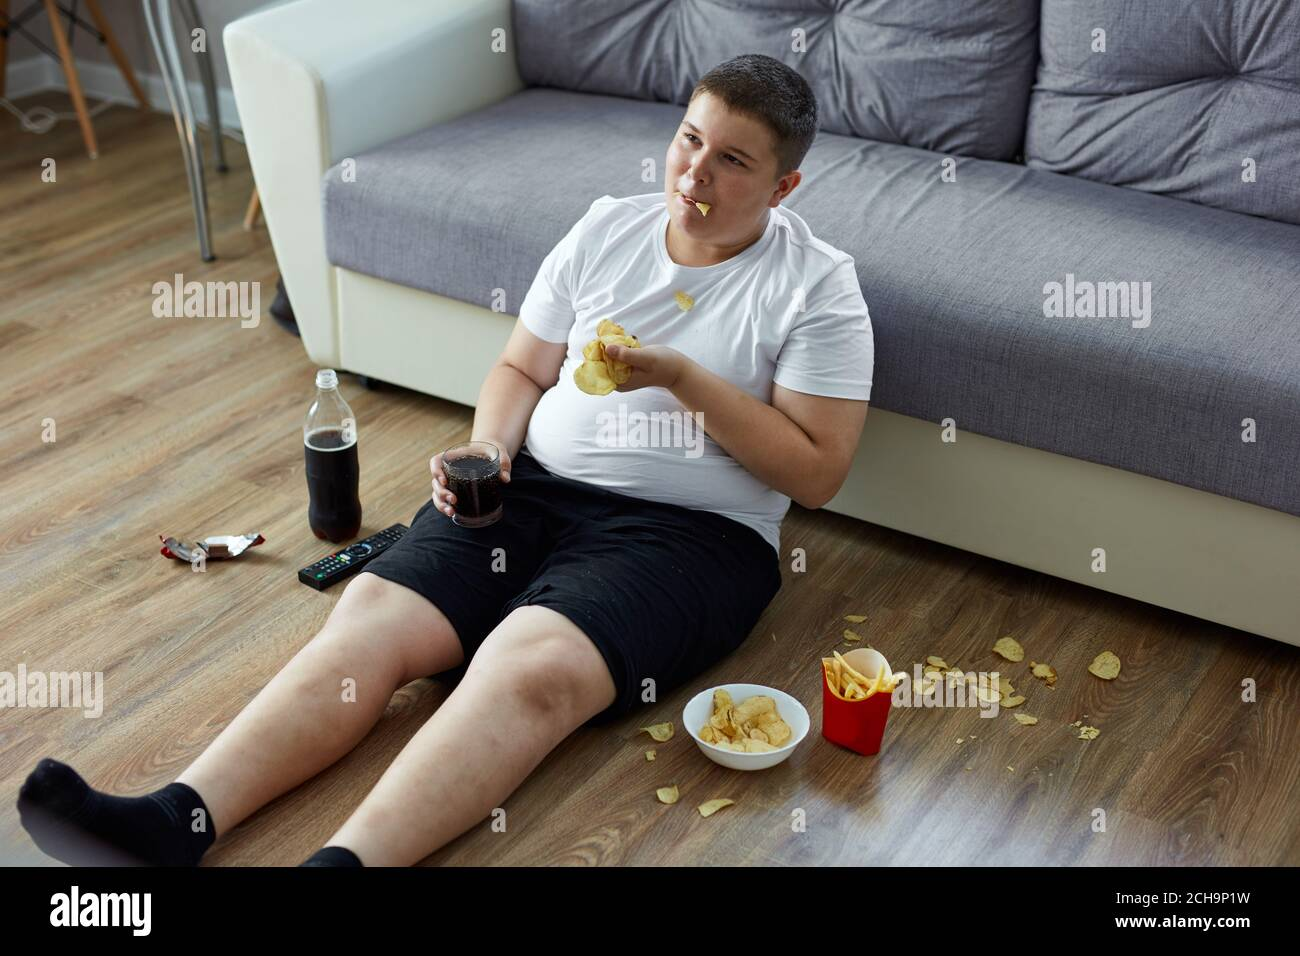 An Overweight Child Boy Enjoy Leading Unhealthy Passive Lifestyle Sits On The Floor Watching Tv And Eating He Moves A Little That Is Why He Is Fat Stock Photo Alamy